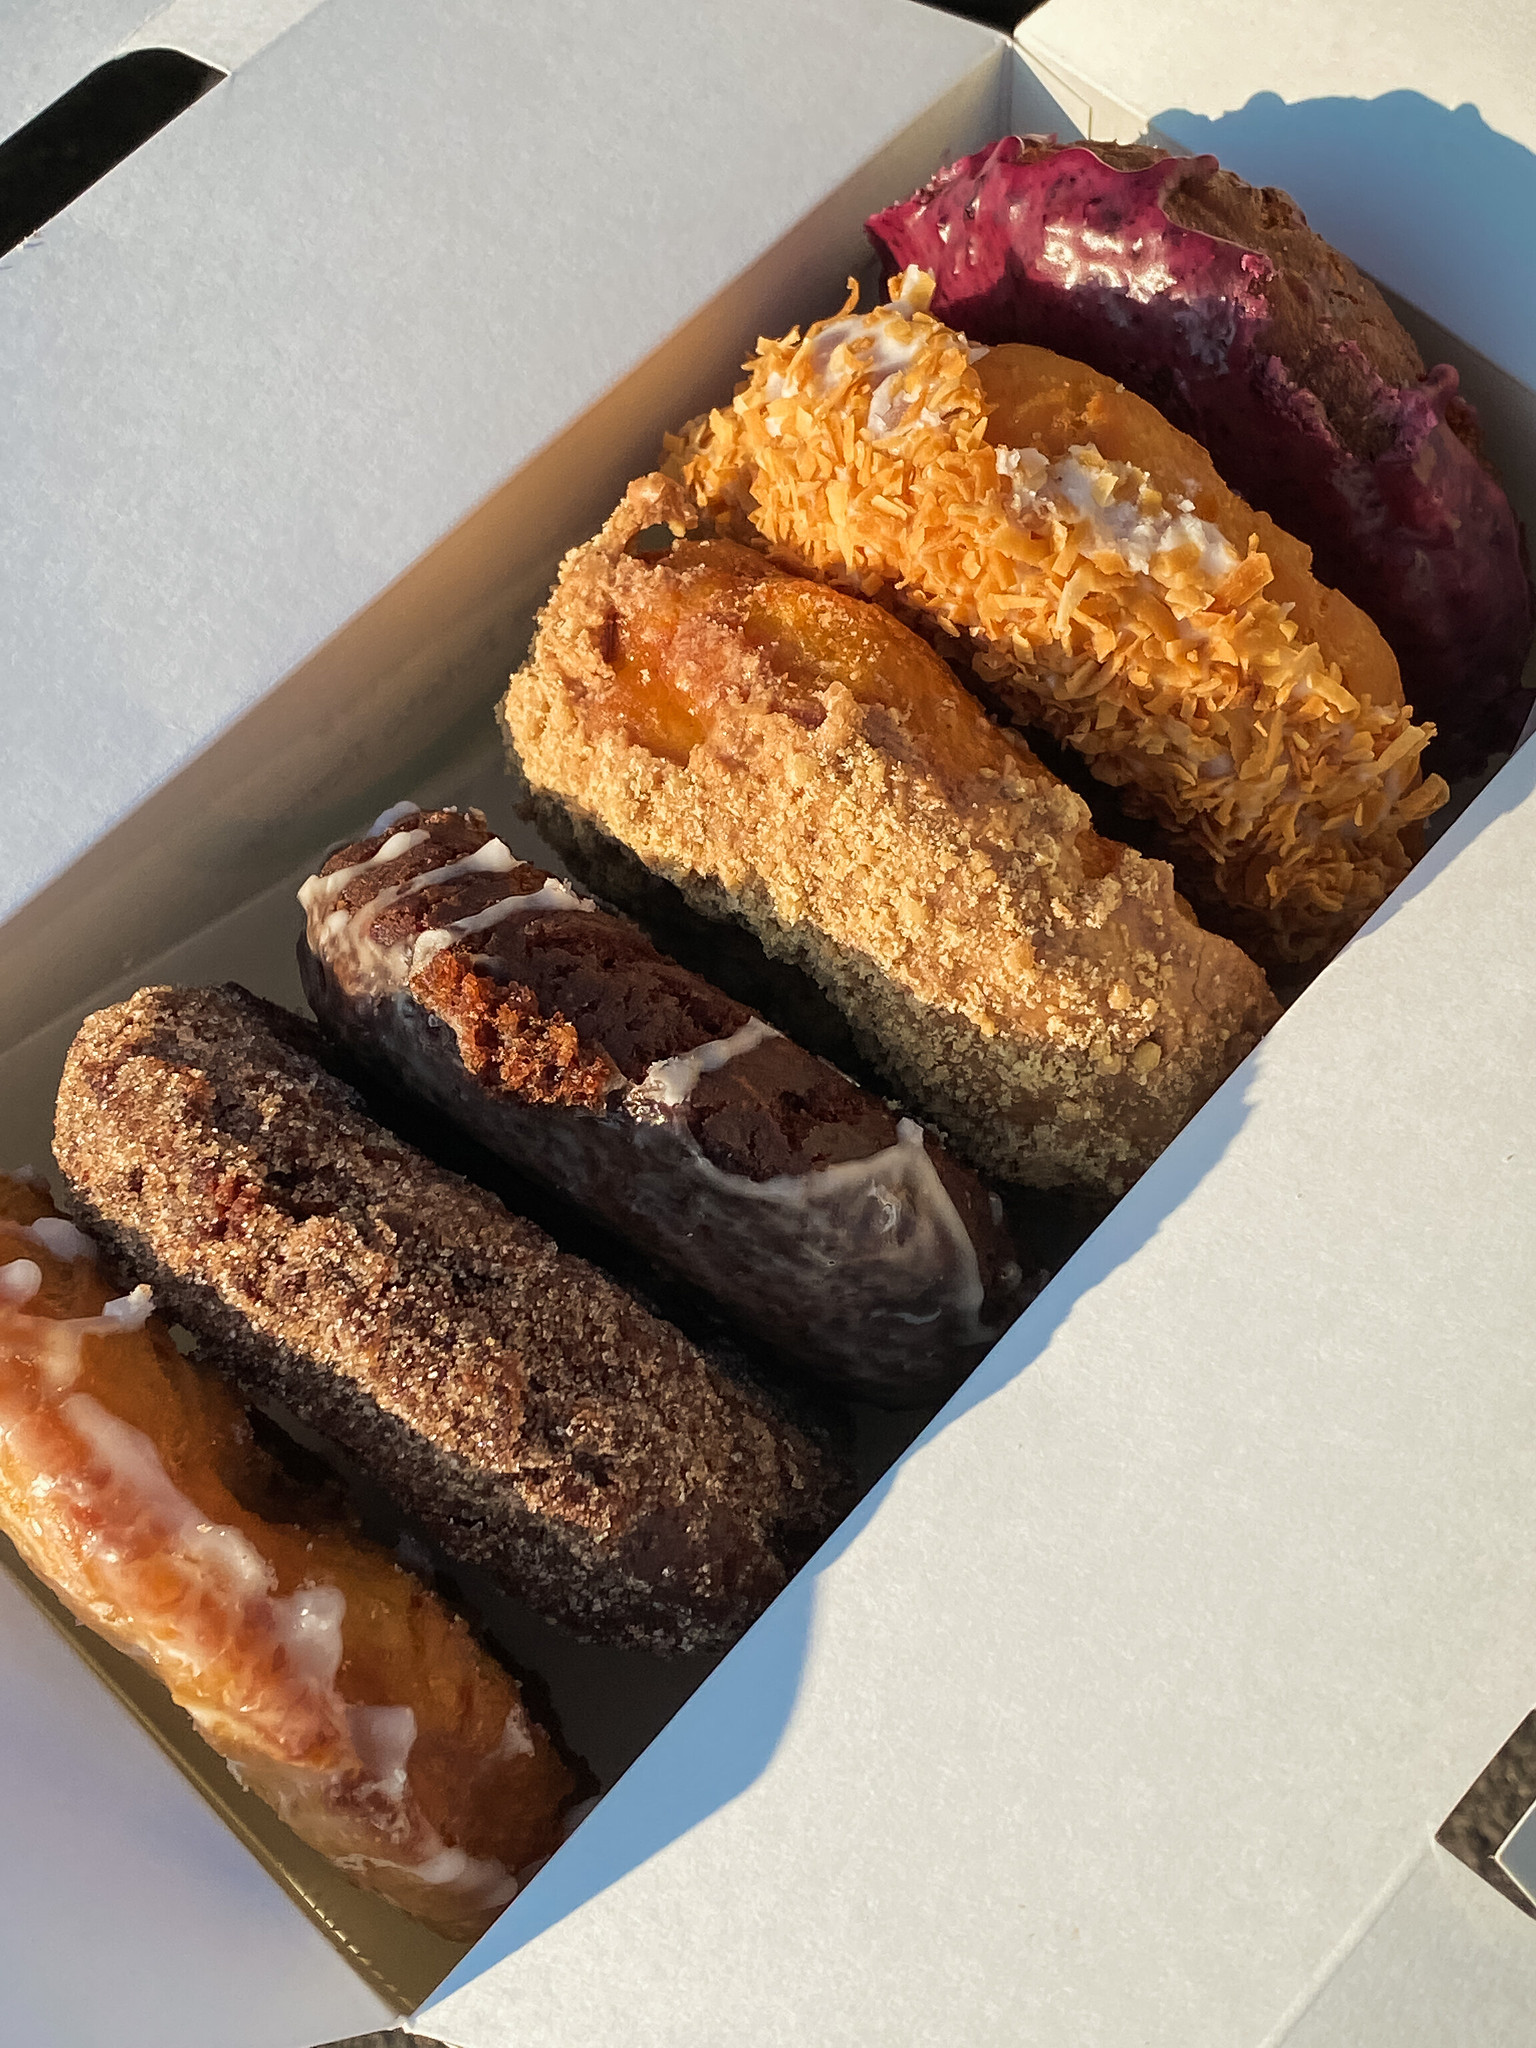 The Holy Donut | Best Places to Eat in Portland | 2 Days in Portland Maine | 48 Hours in Portland Maine | The Perfect Weekend in Maine | Explore Portland, ME | Weekend in Portland, ME | Portland Travel Guide | Things to Do & Where to Stay | Top Things to Eat in Portland